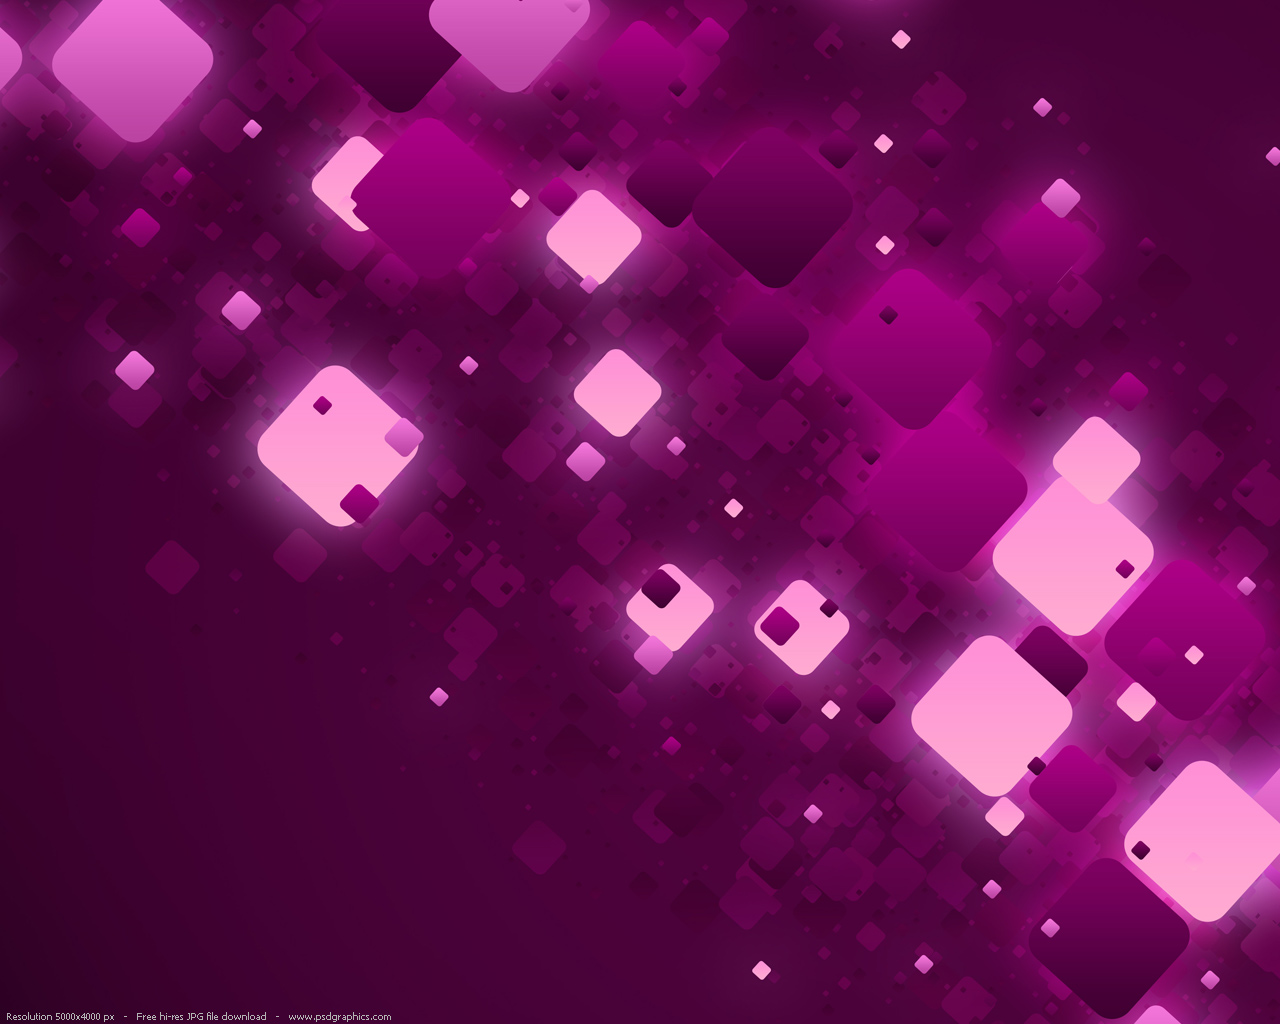 Purple Abstract Wallpapers   Desktop Background Wallpapers 1280x1024